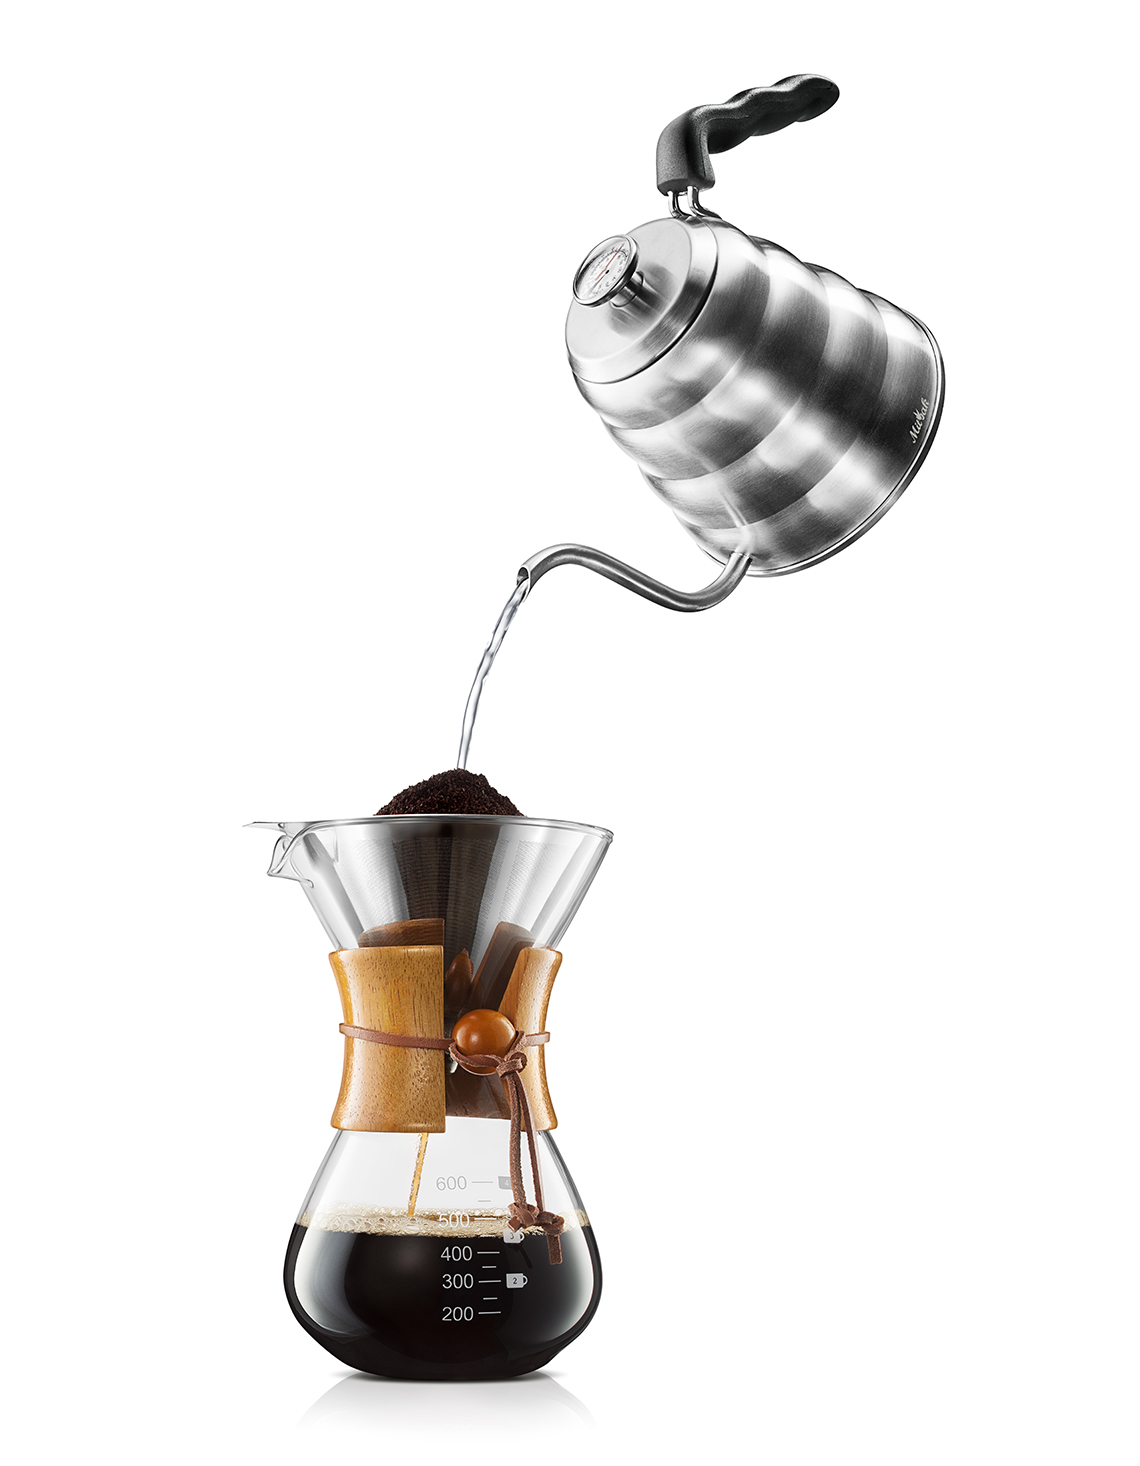 New-york-still-life-photography-pour-over-coffe-maker